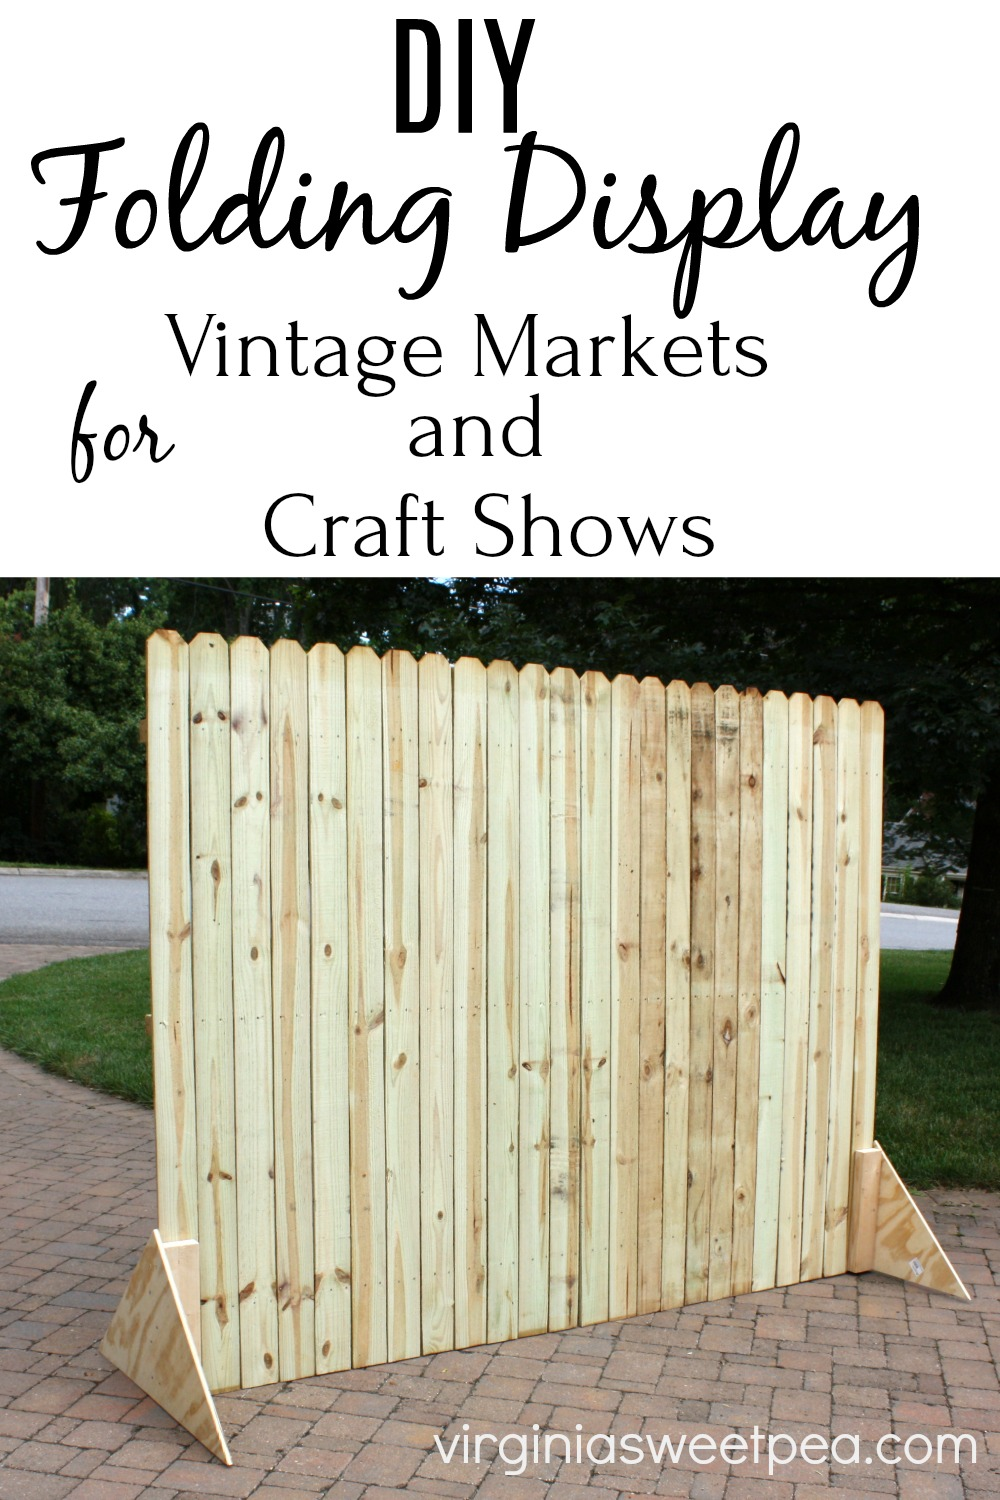 DIY Folding Display - Learn how to make a display that folds to use for craft shows or vintage markets. #foldingdisplay #woodworking #craftshowdisplay #showdisplay via @spaula